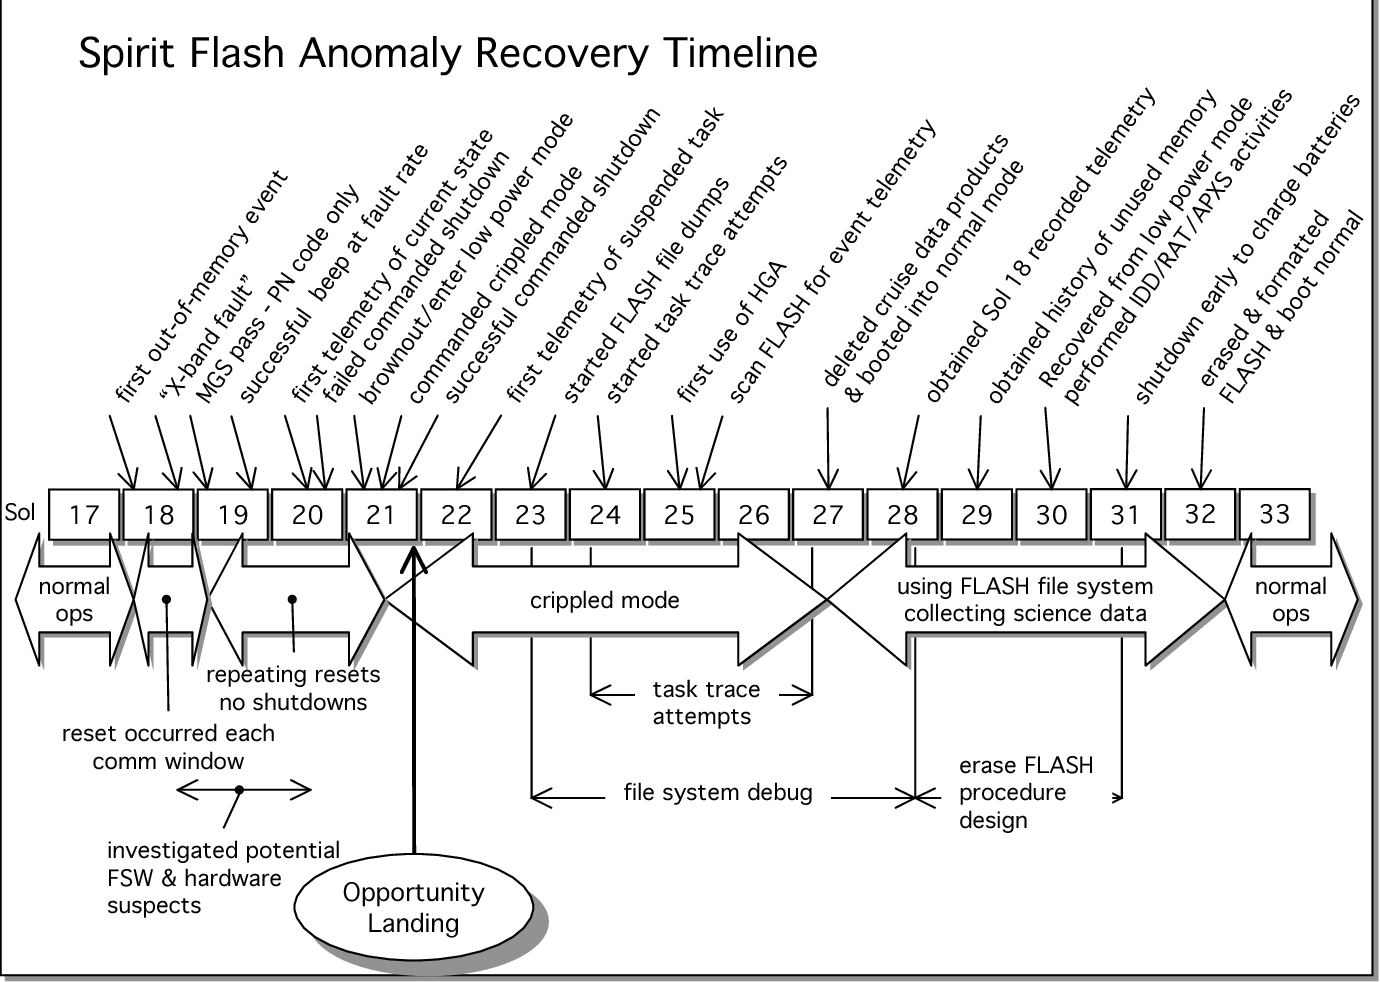 Figure 2: Anomaly events and recovery timeline